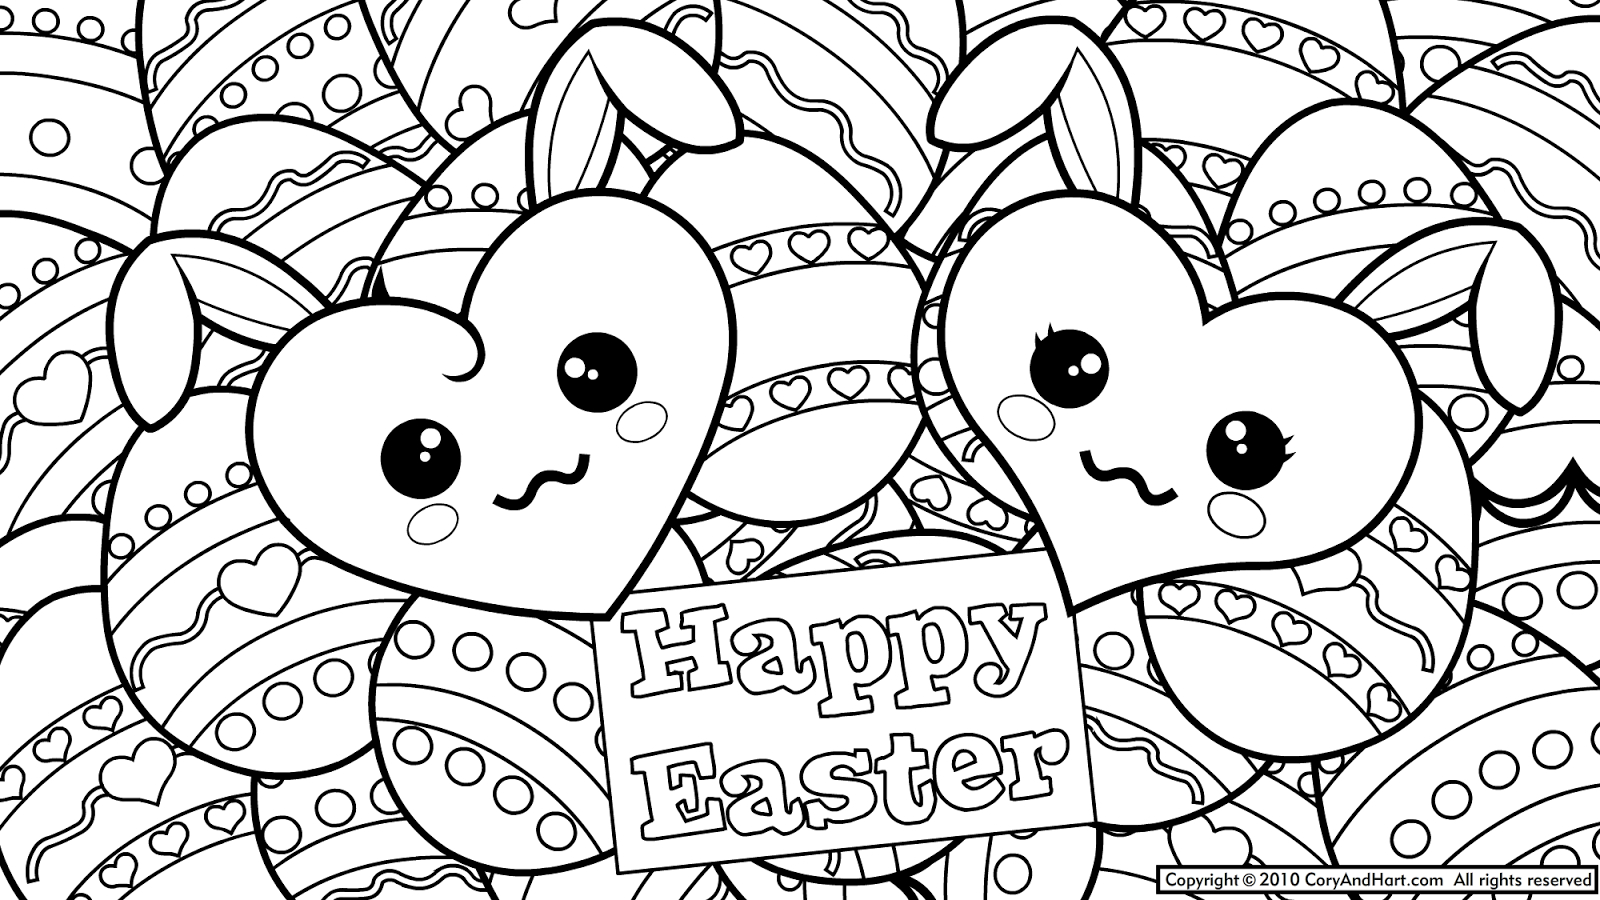 Mosaic Coloring Pages to Print Collection Of Easter Coloring Printable Easter Coloring Pages Coloring Gallery